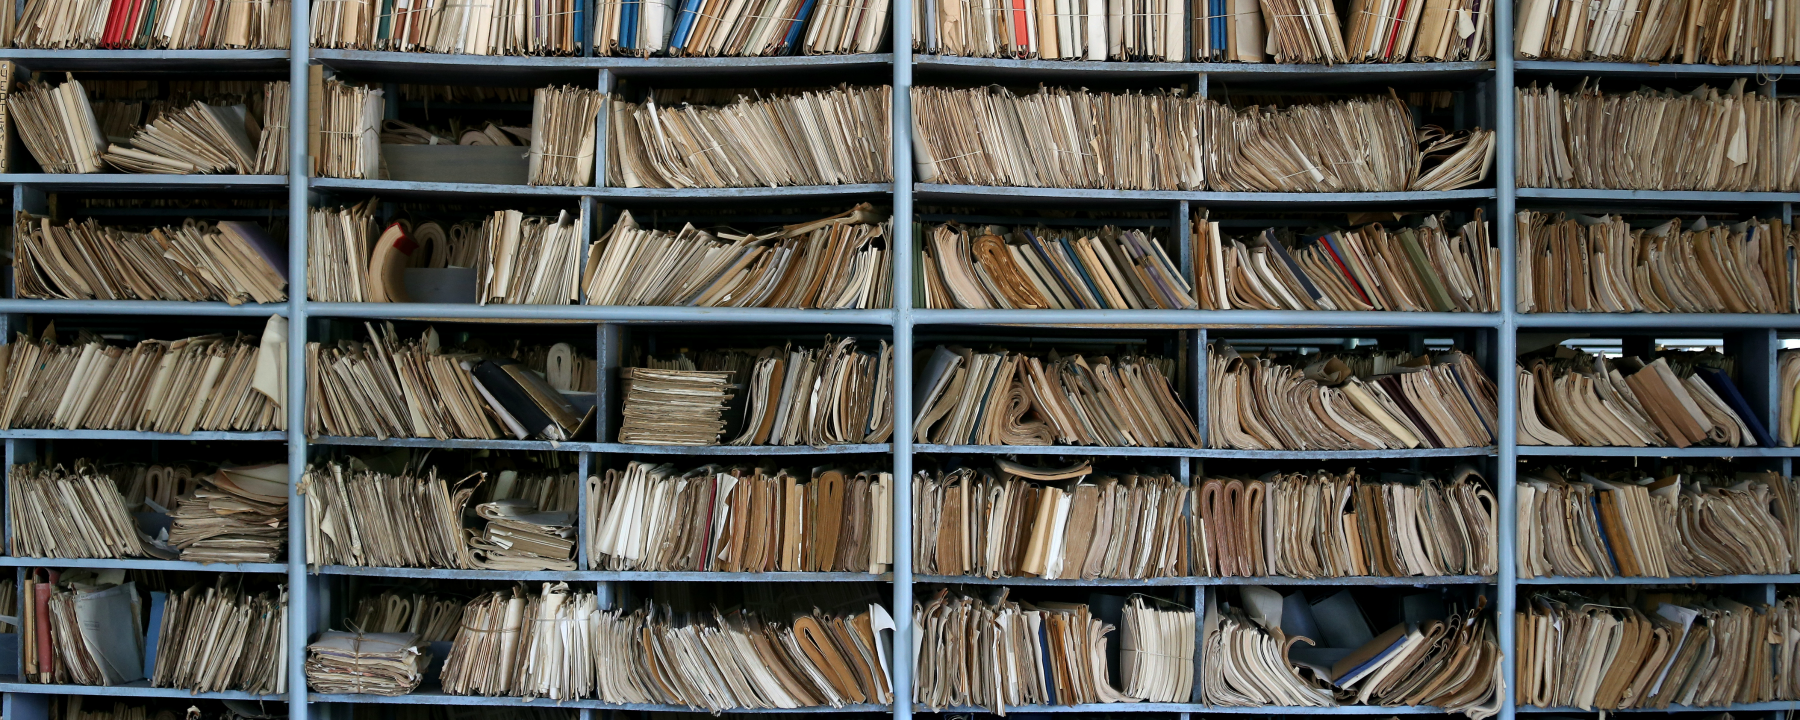 Where to Share Data Instead of Journal Supplements